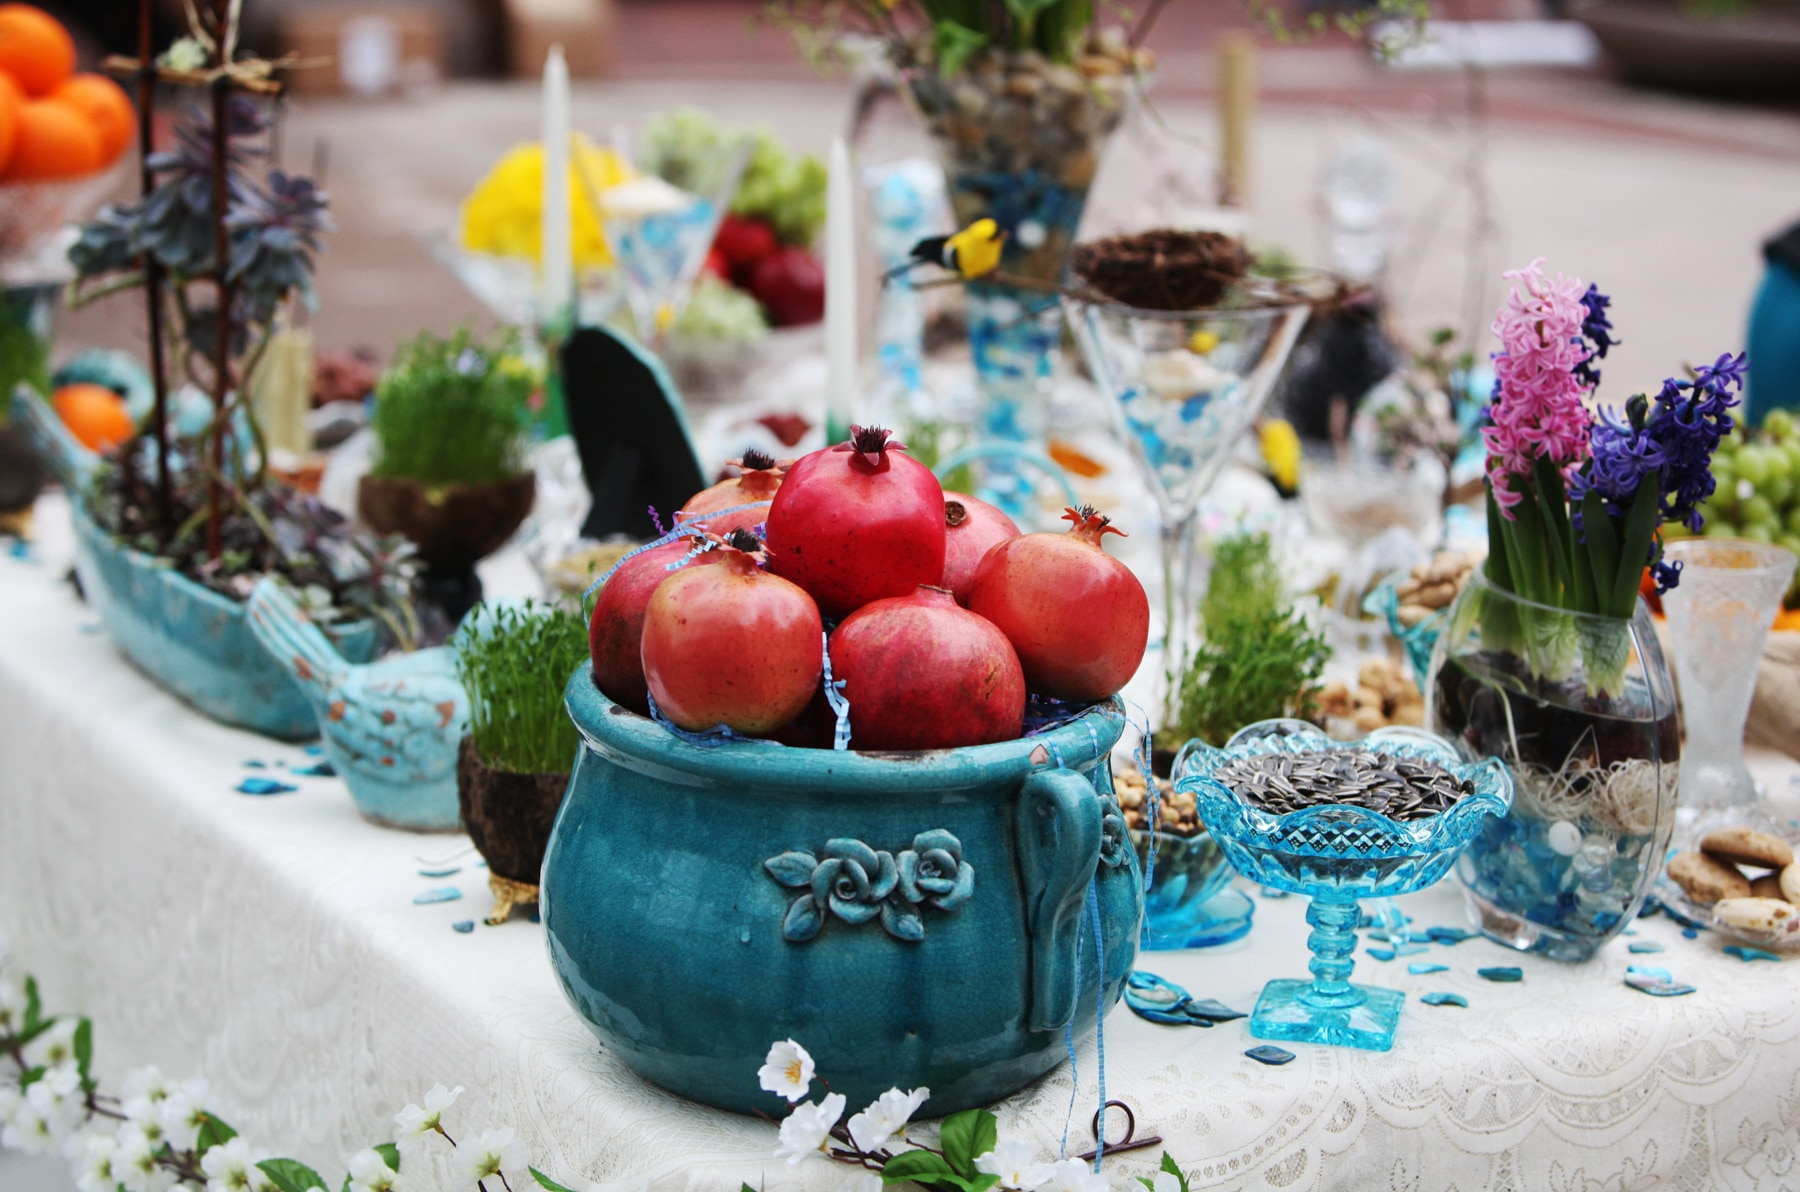 Table full of offerings for a religious holiday (©Ali Khaligh)